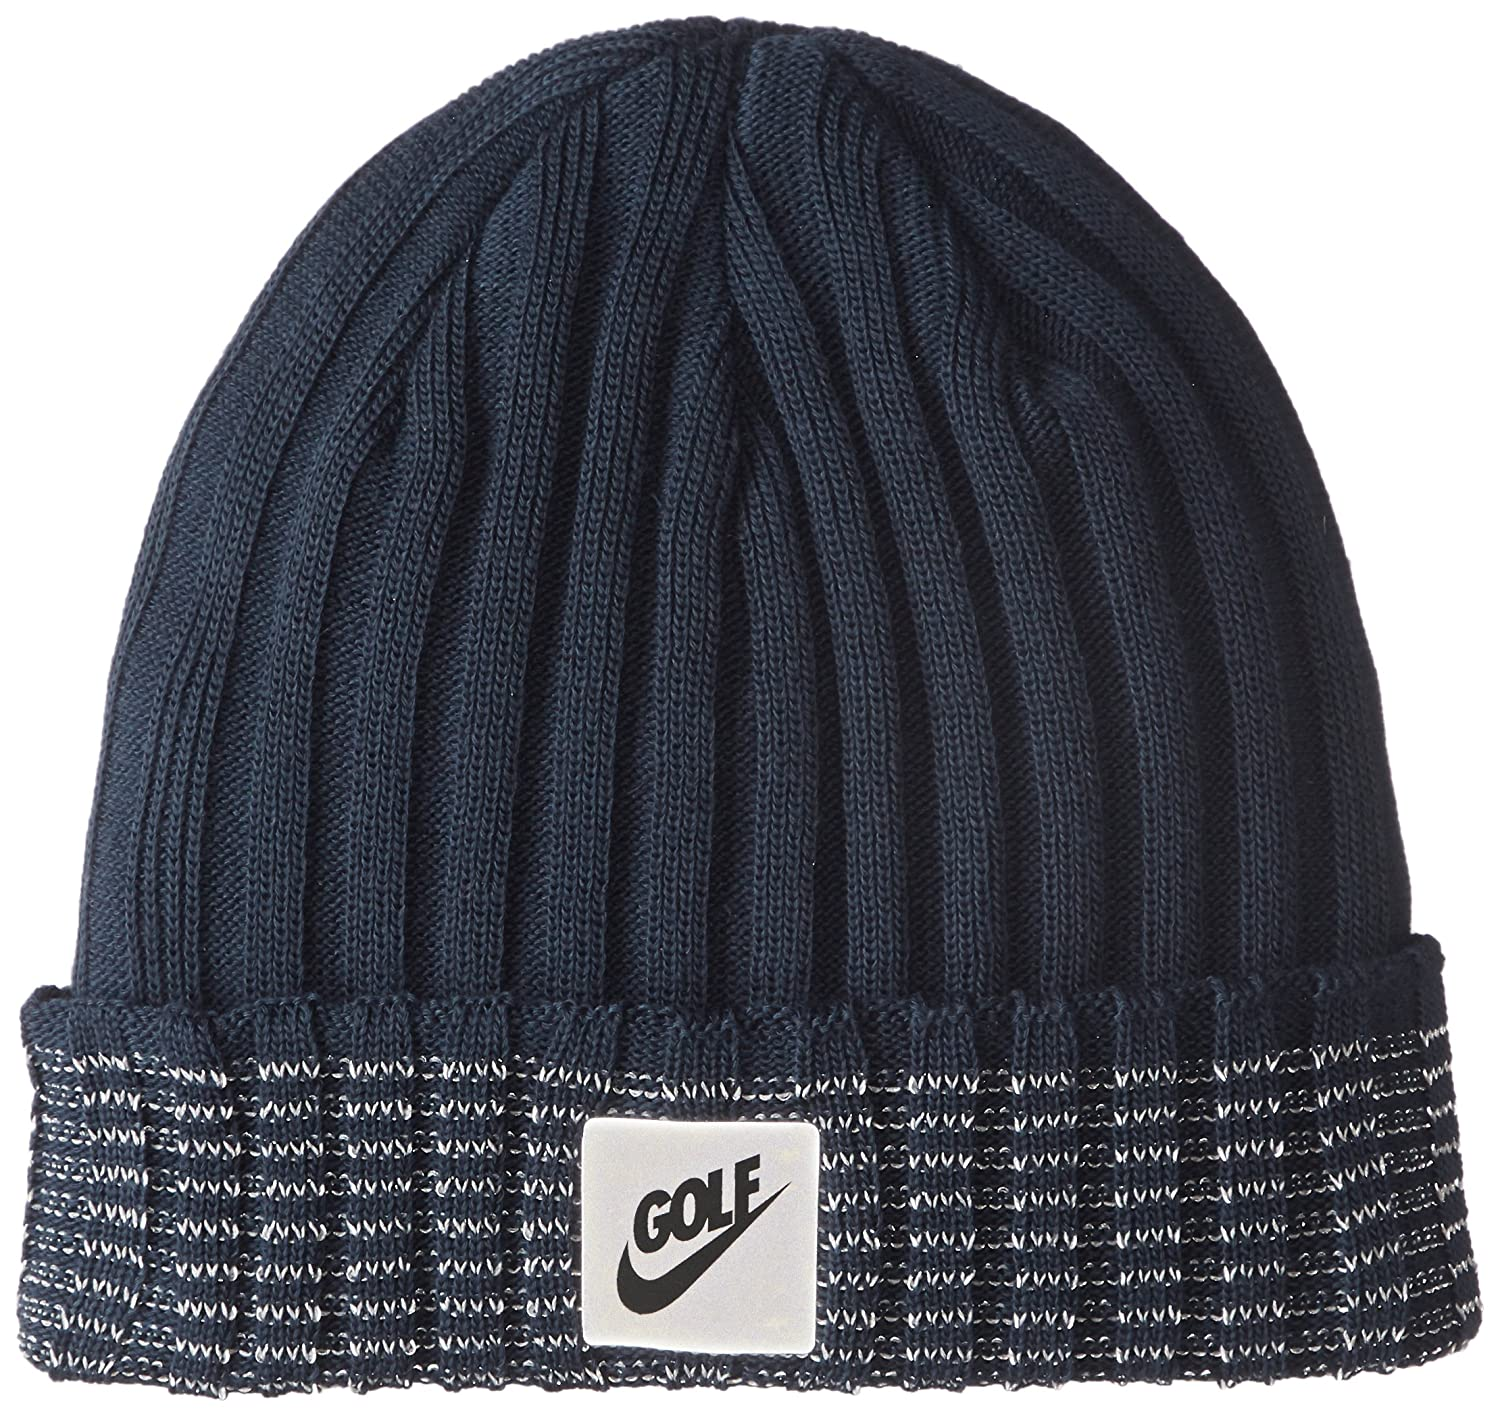 NIKE Unisex Golf Beanie Cuffed Knit Hat Armory Navy 856377-454 One Size at  Amazon Men s Clothing store  352cd94102b